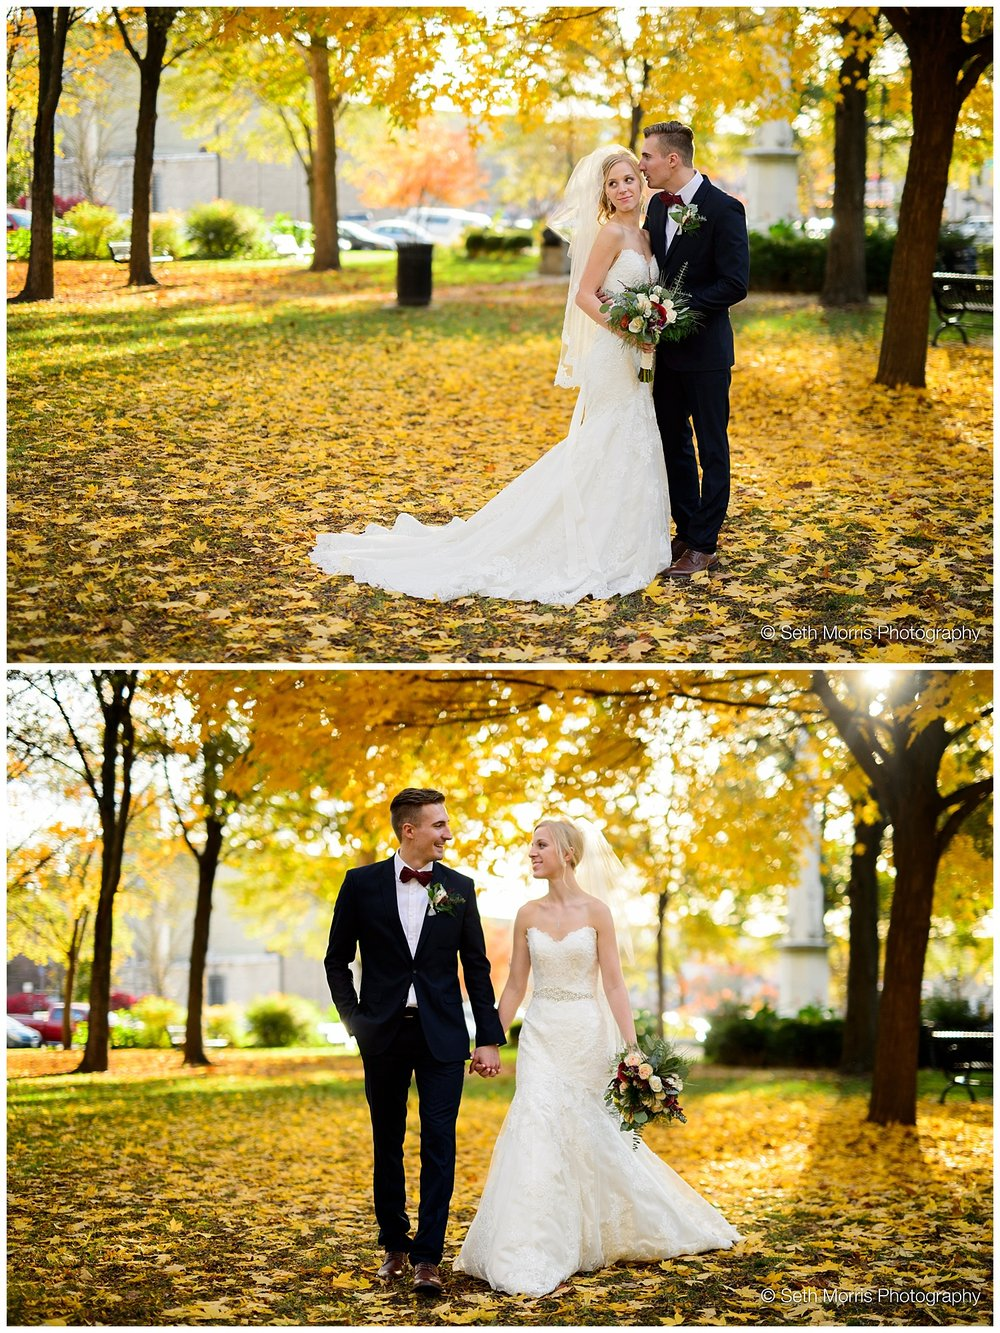 fall-wedding-ottawa-illinois-photographer-66.jpg